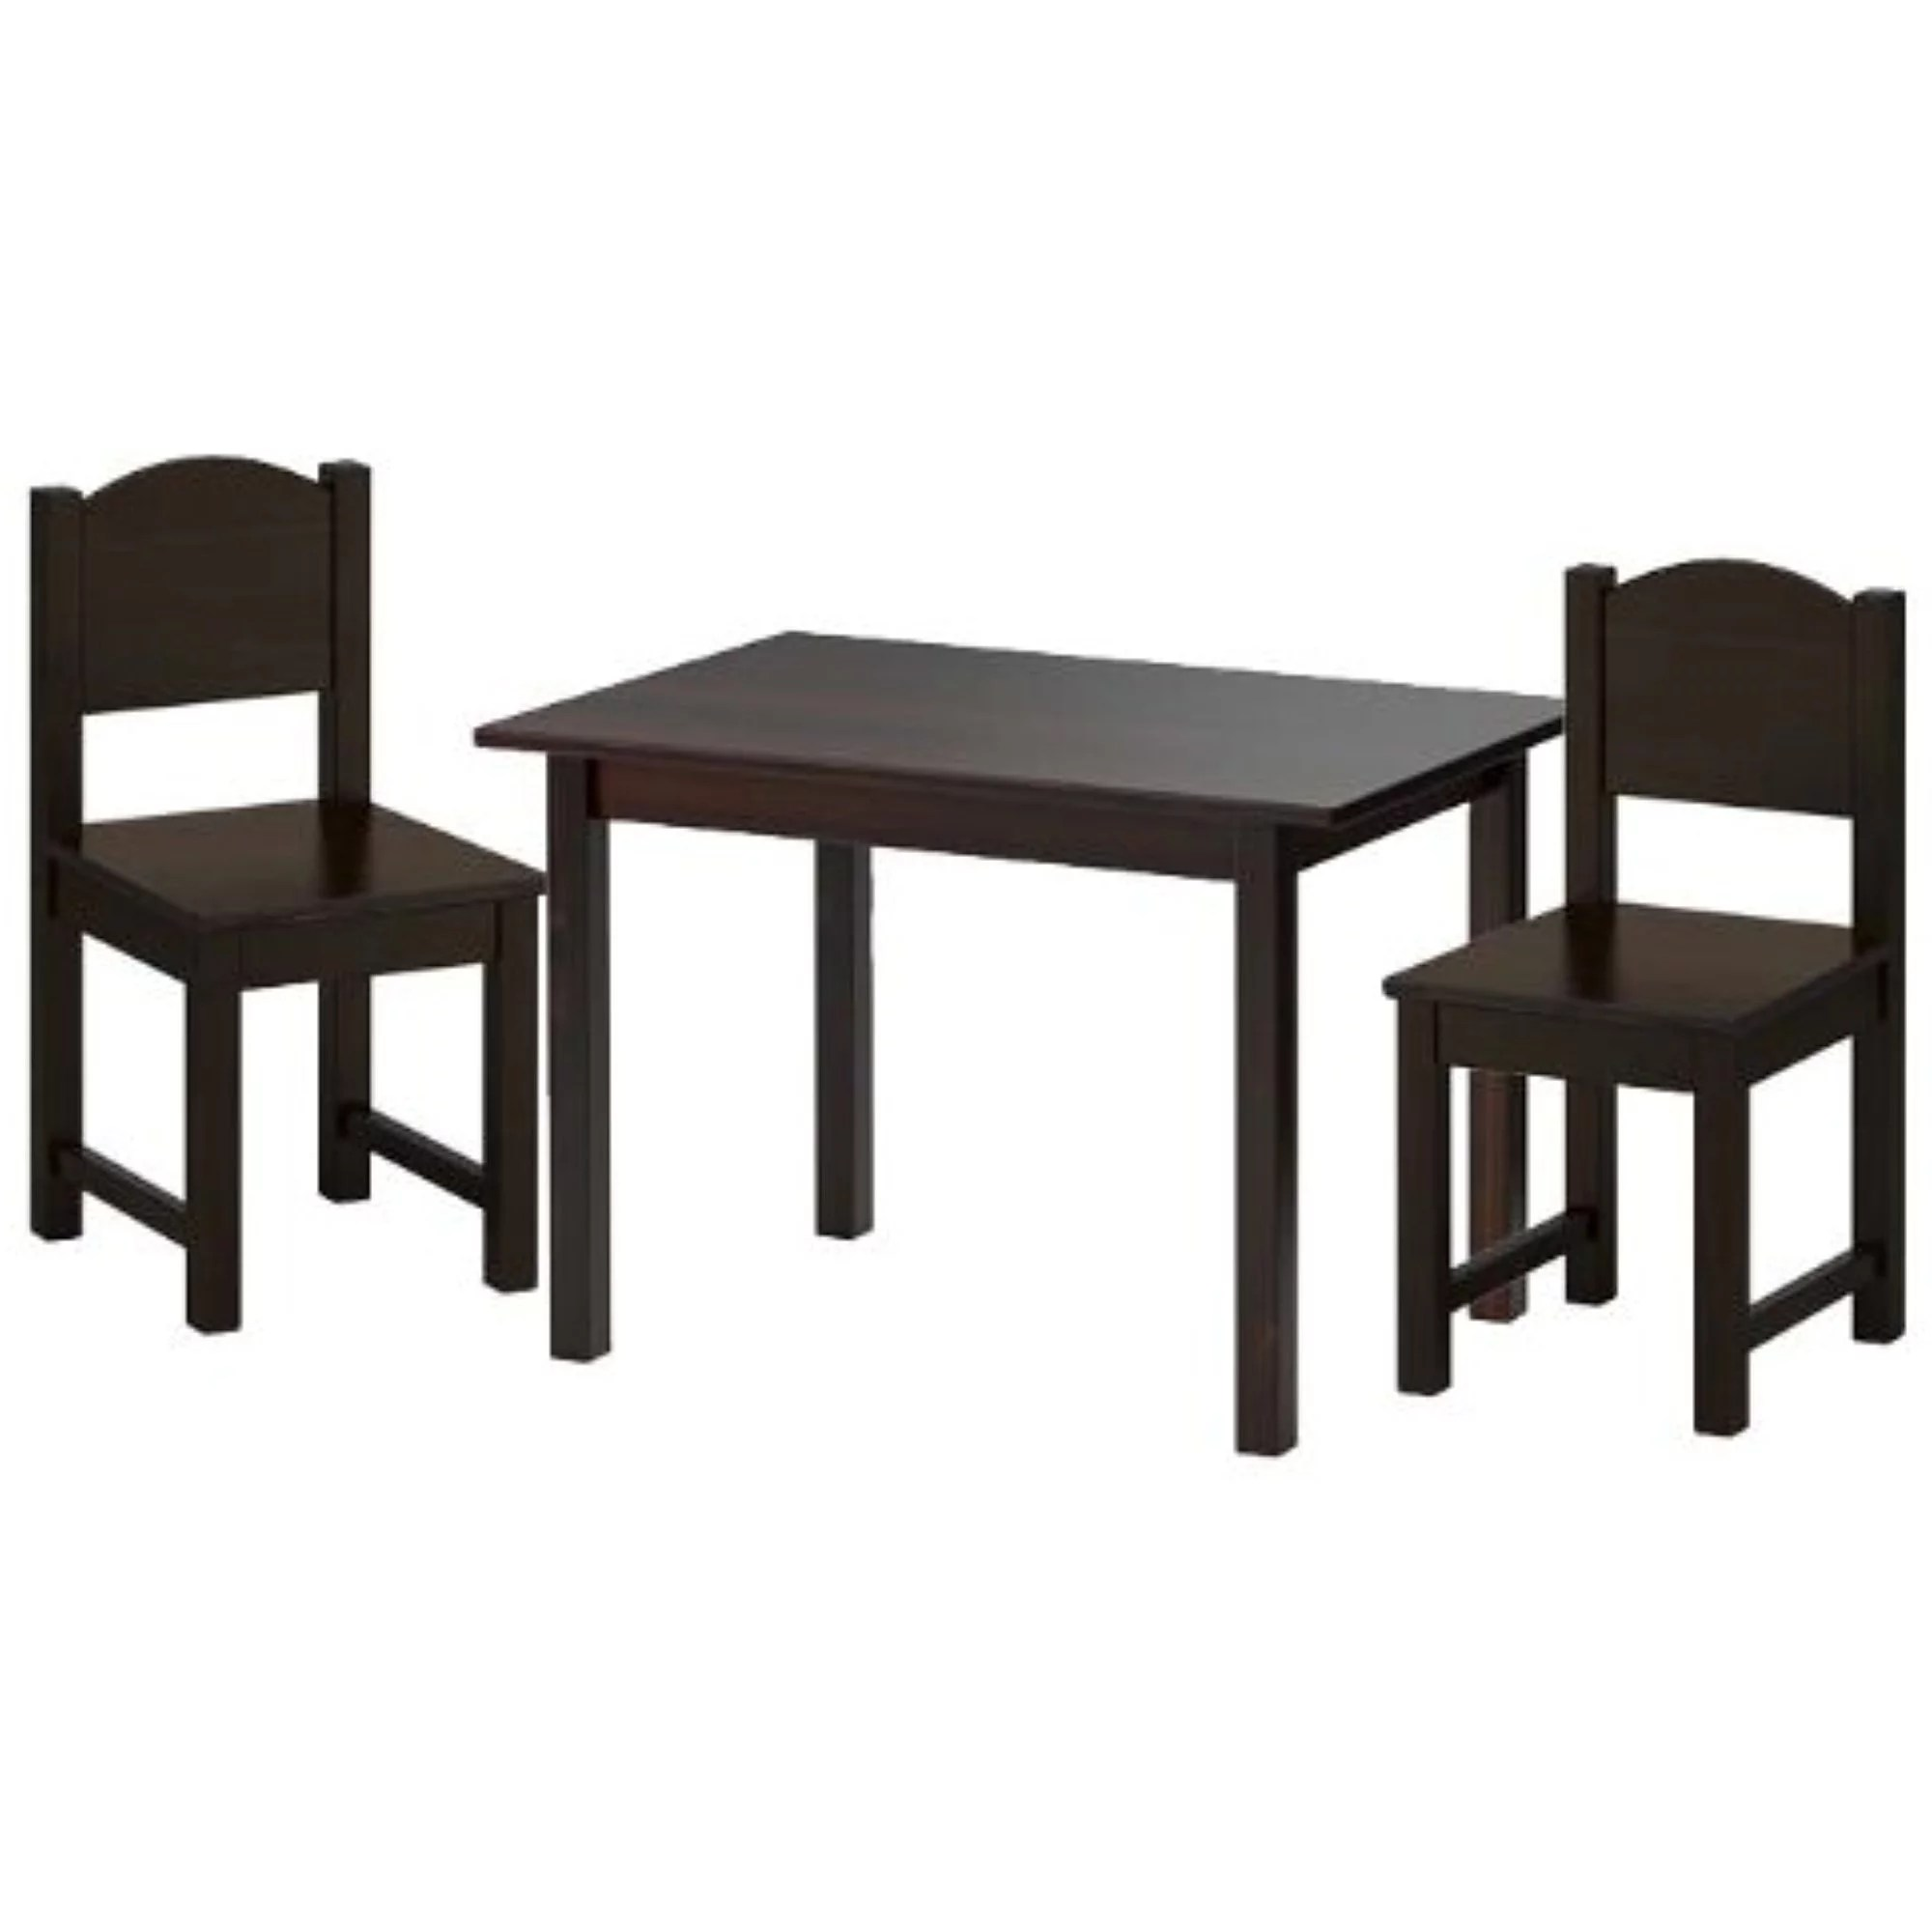 Ikea Black Chair Ikea Sundvik Children S Table And 2 Chairs Set Black Brown 38210 5223 1616